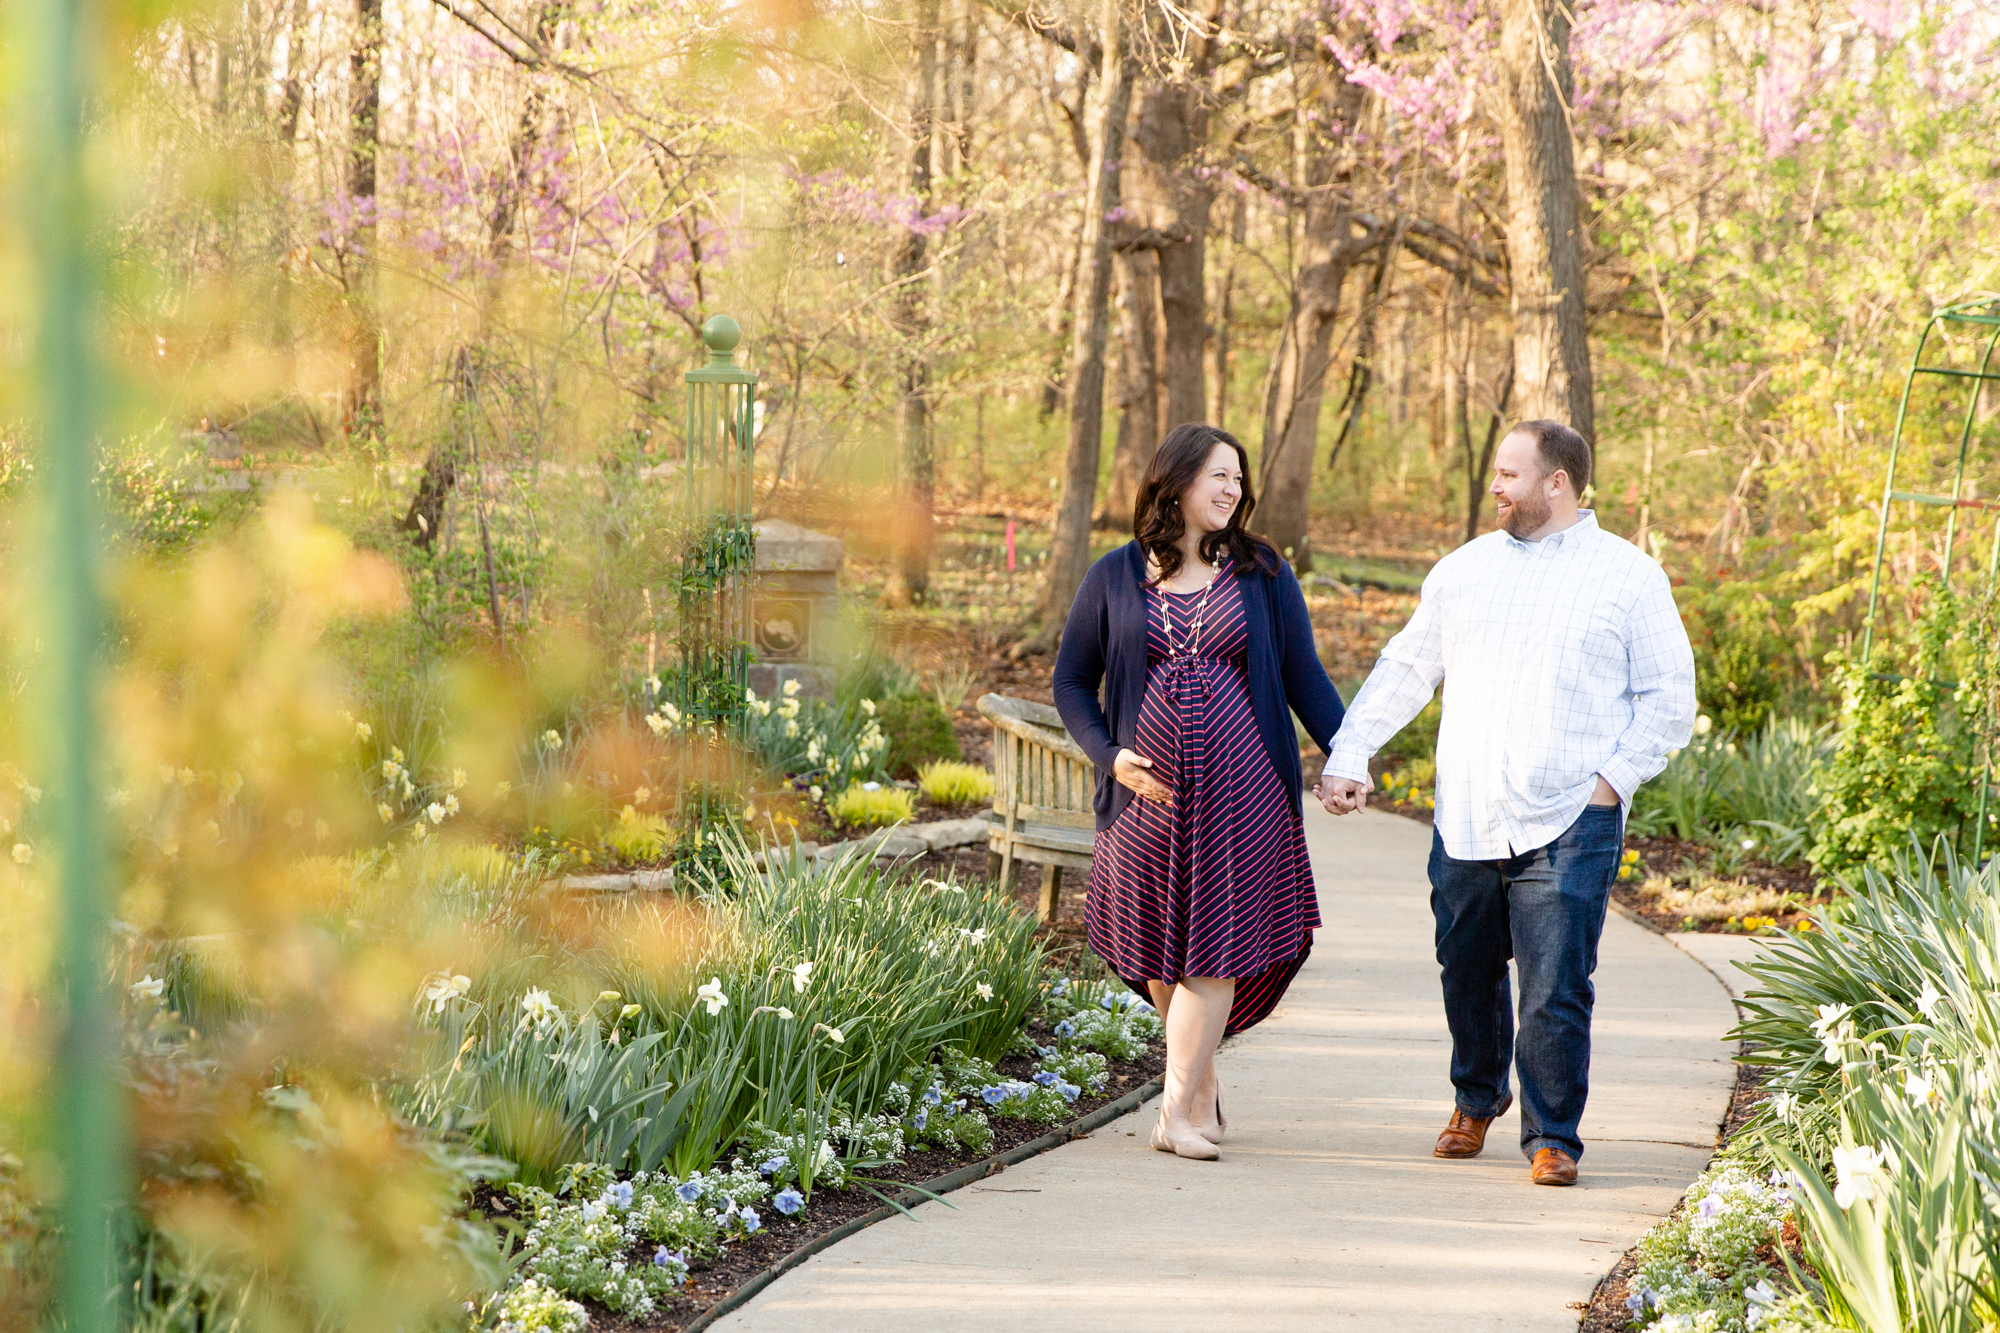 Pink & Navy Spring Sunrise Maternity Session at the Overland Park Arboretum and Botanical Gardens | Kansas